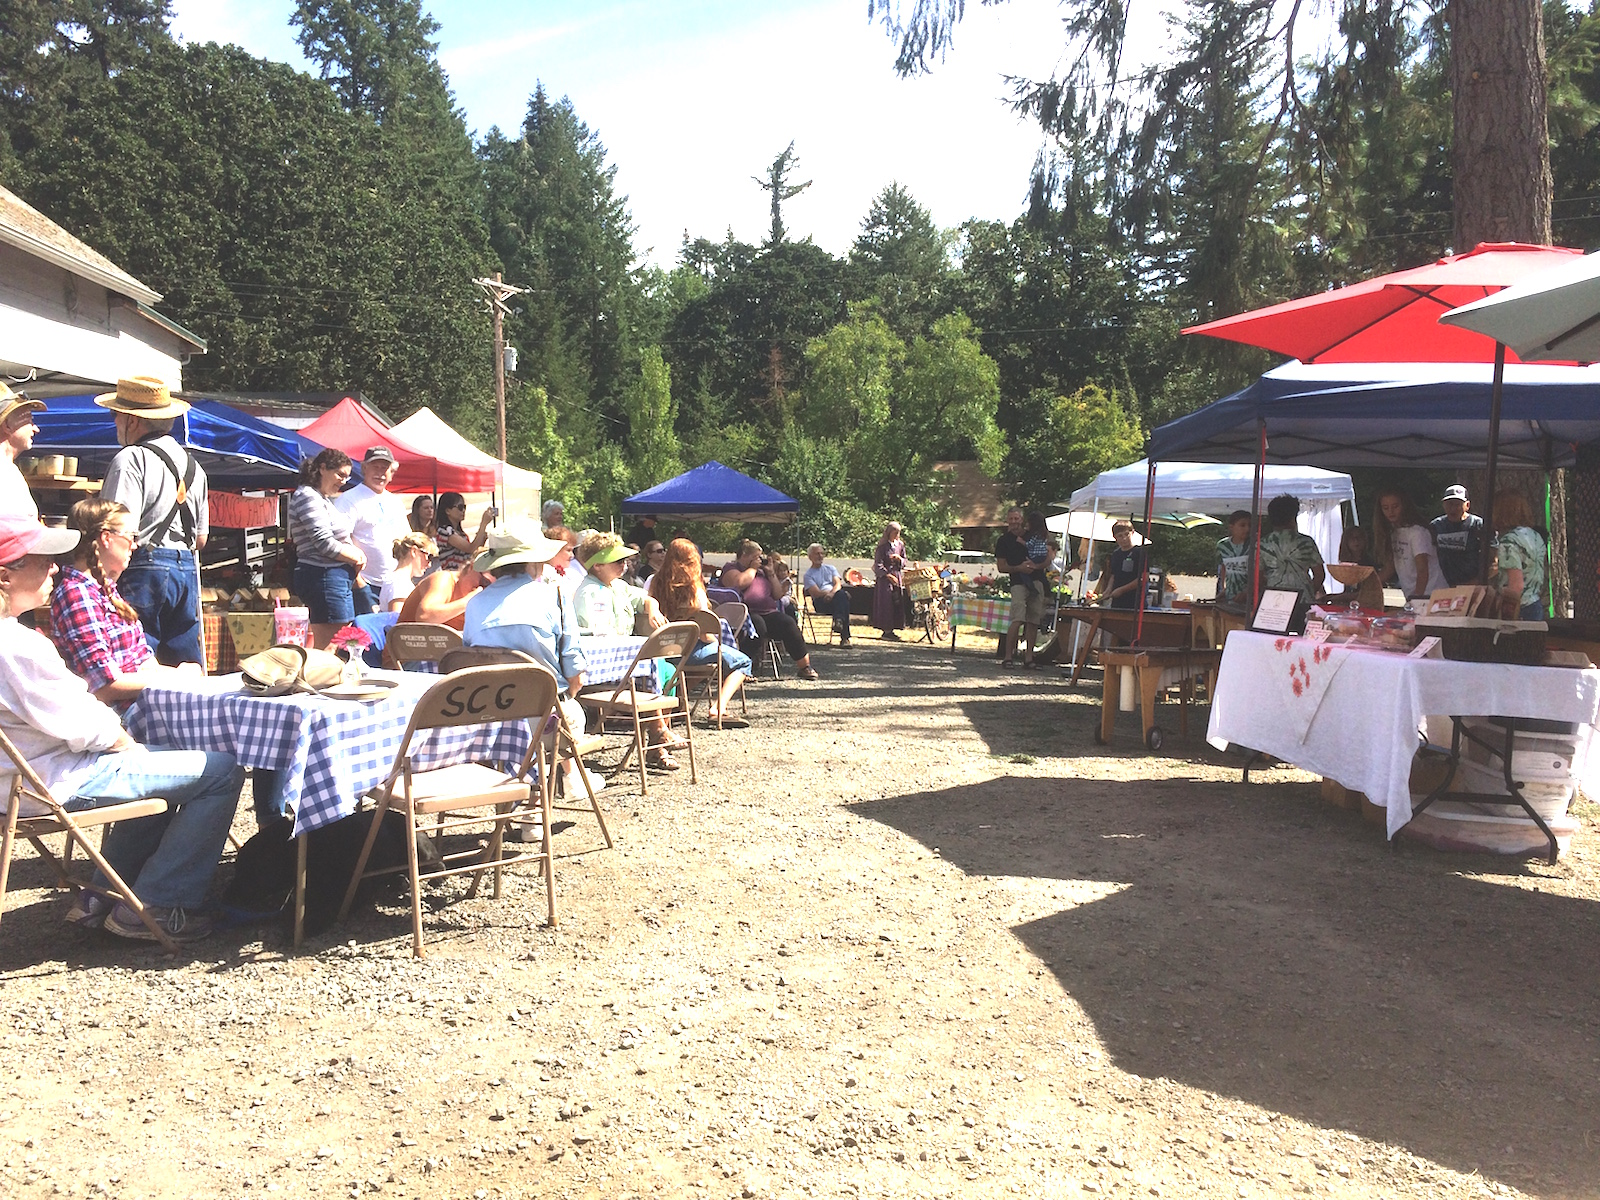 View of the Market last week when the Adams School Marimba Band performed at the Spencer Creek Growers Market